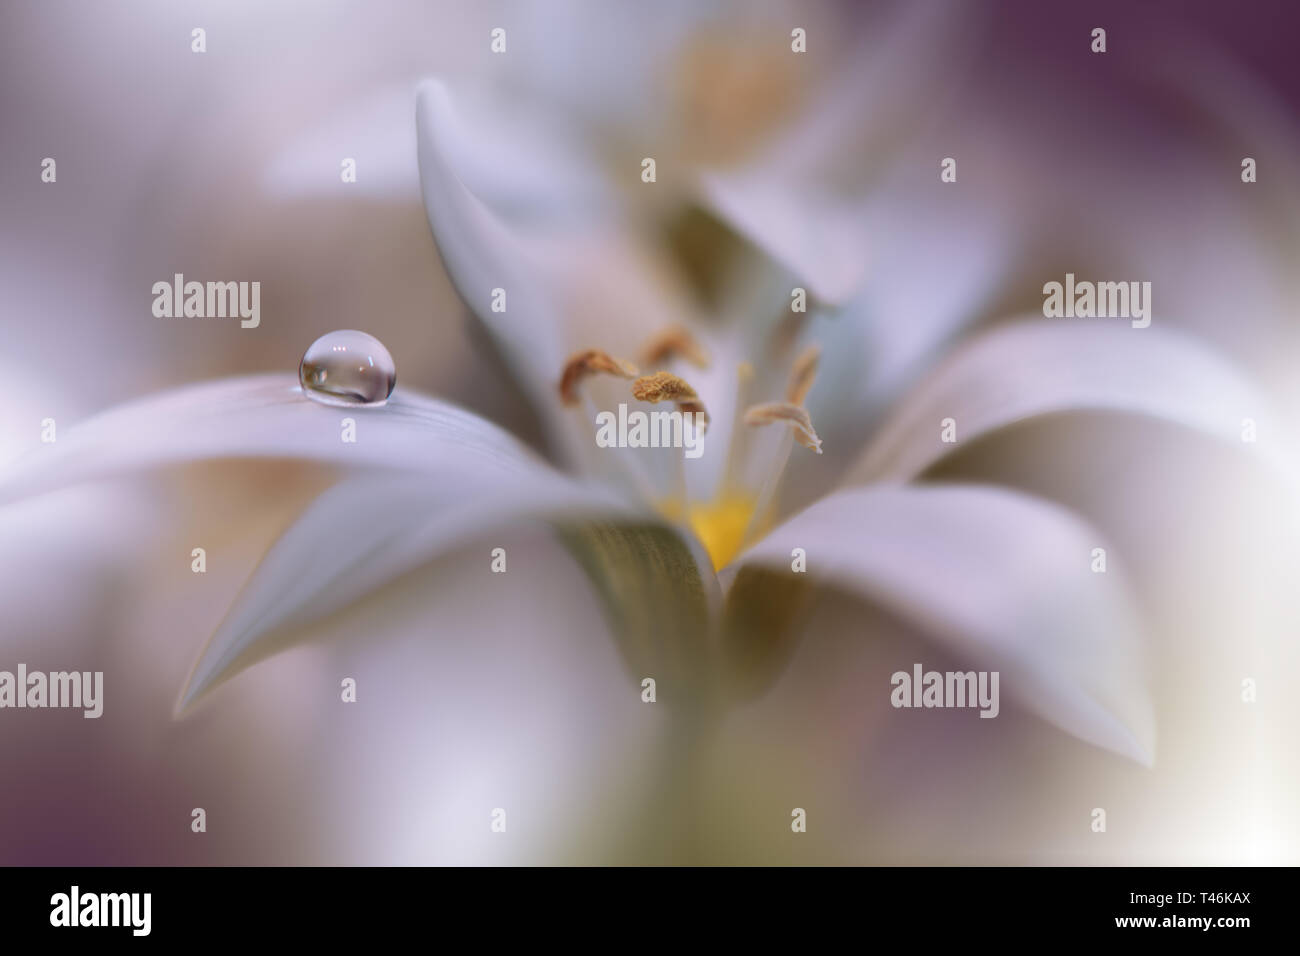 Beautiful Nature Background Colorful Artistic Wallpaper Natural Macro Photography Beauty In Nature Creative Floral Art Blurred Space For Your Text Stock Photo Alamy